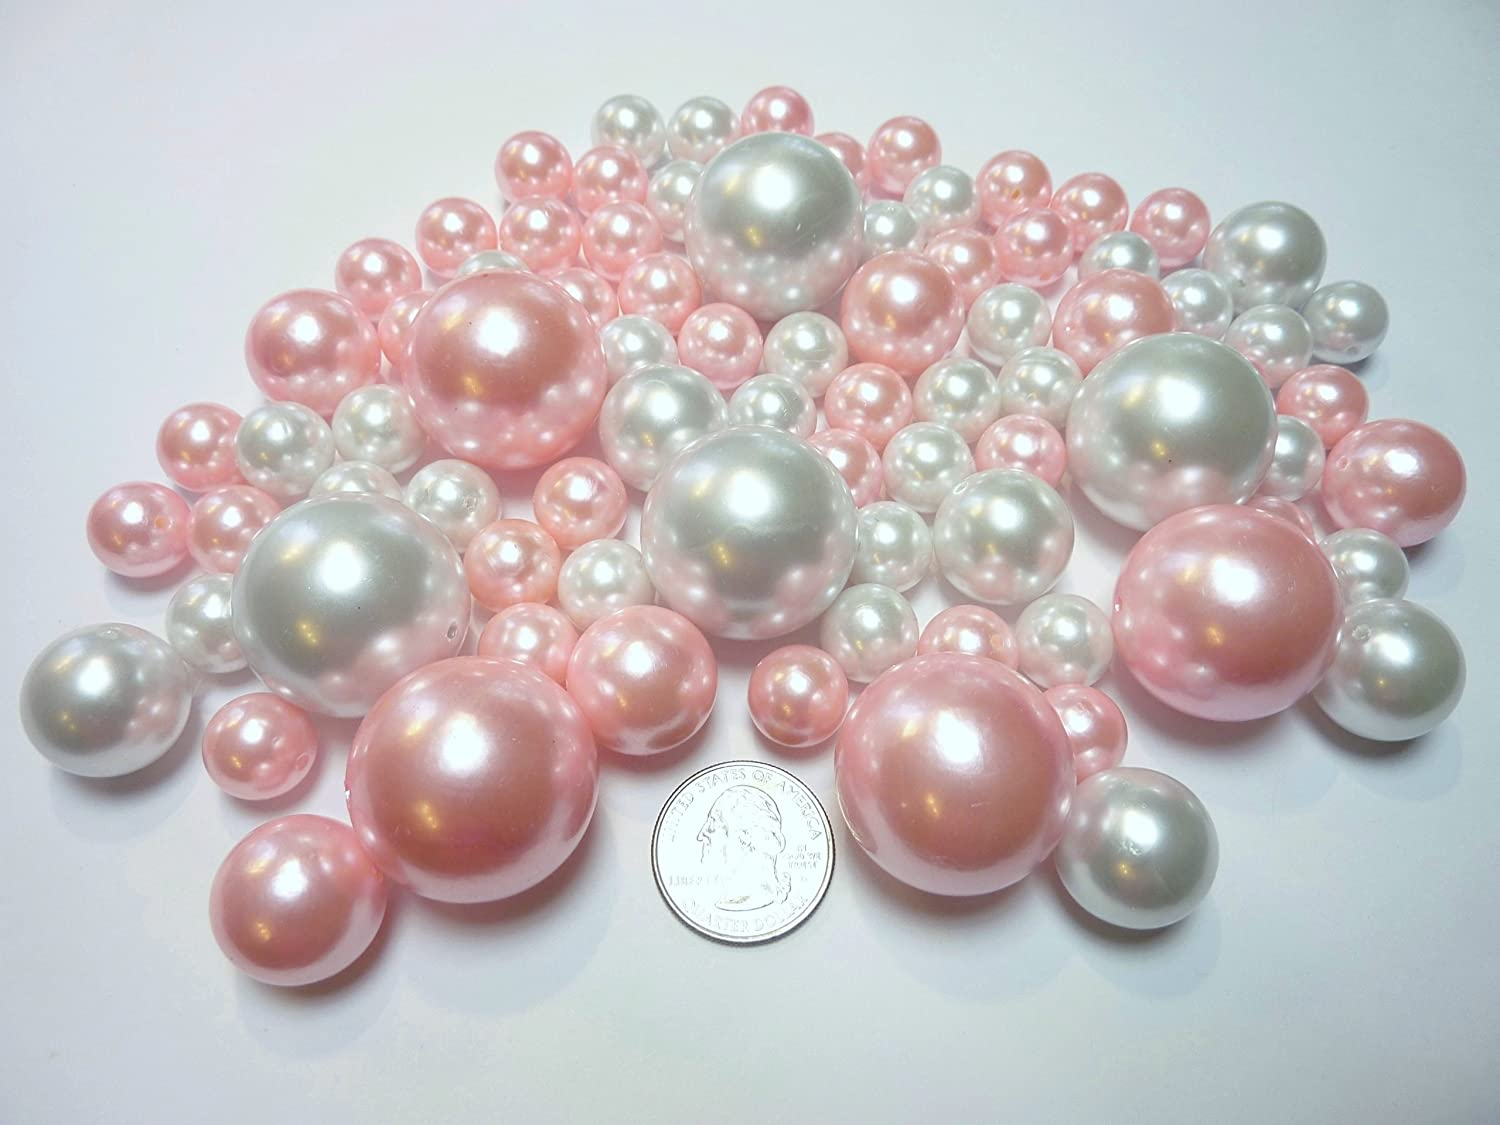 Amazon 80 light baby pinkblush pink and white pearls jumbo amazon 80 light baby pinkblush pink and white pearls jumbo and assorted sizes vase fillers value pack float the pearls you will need to order reviewsmspy